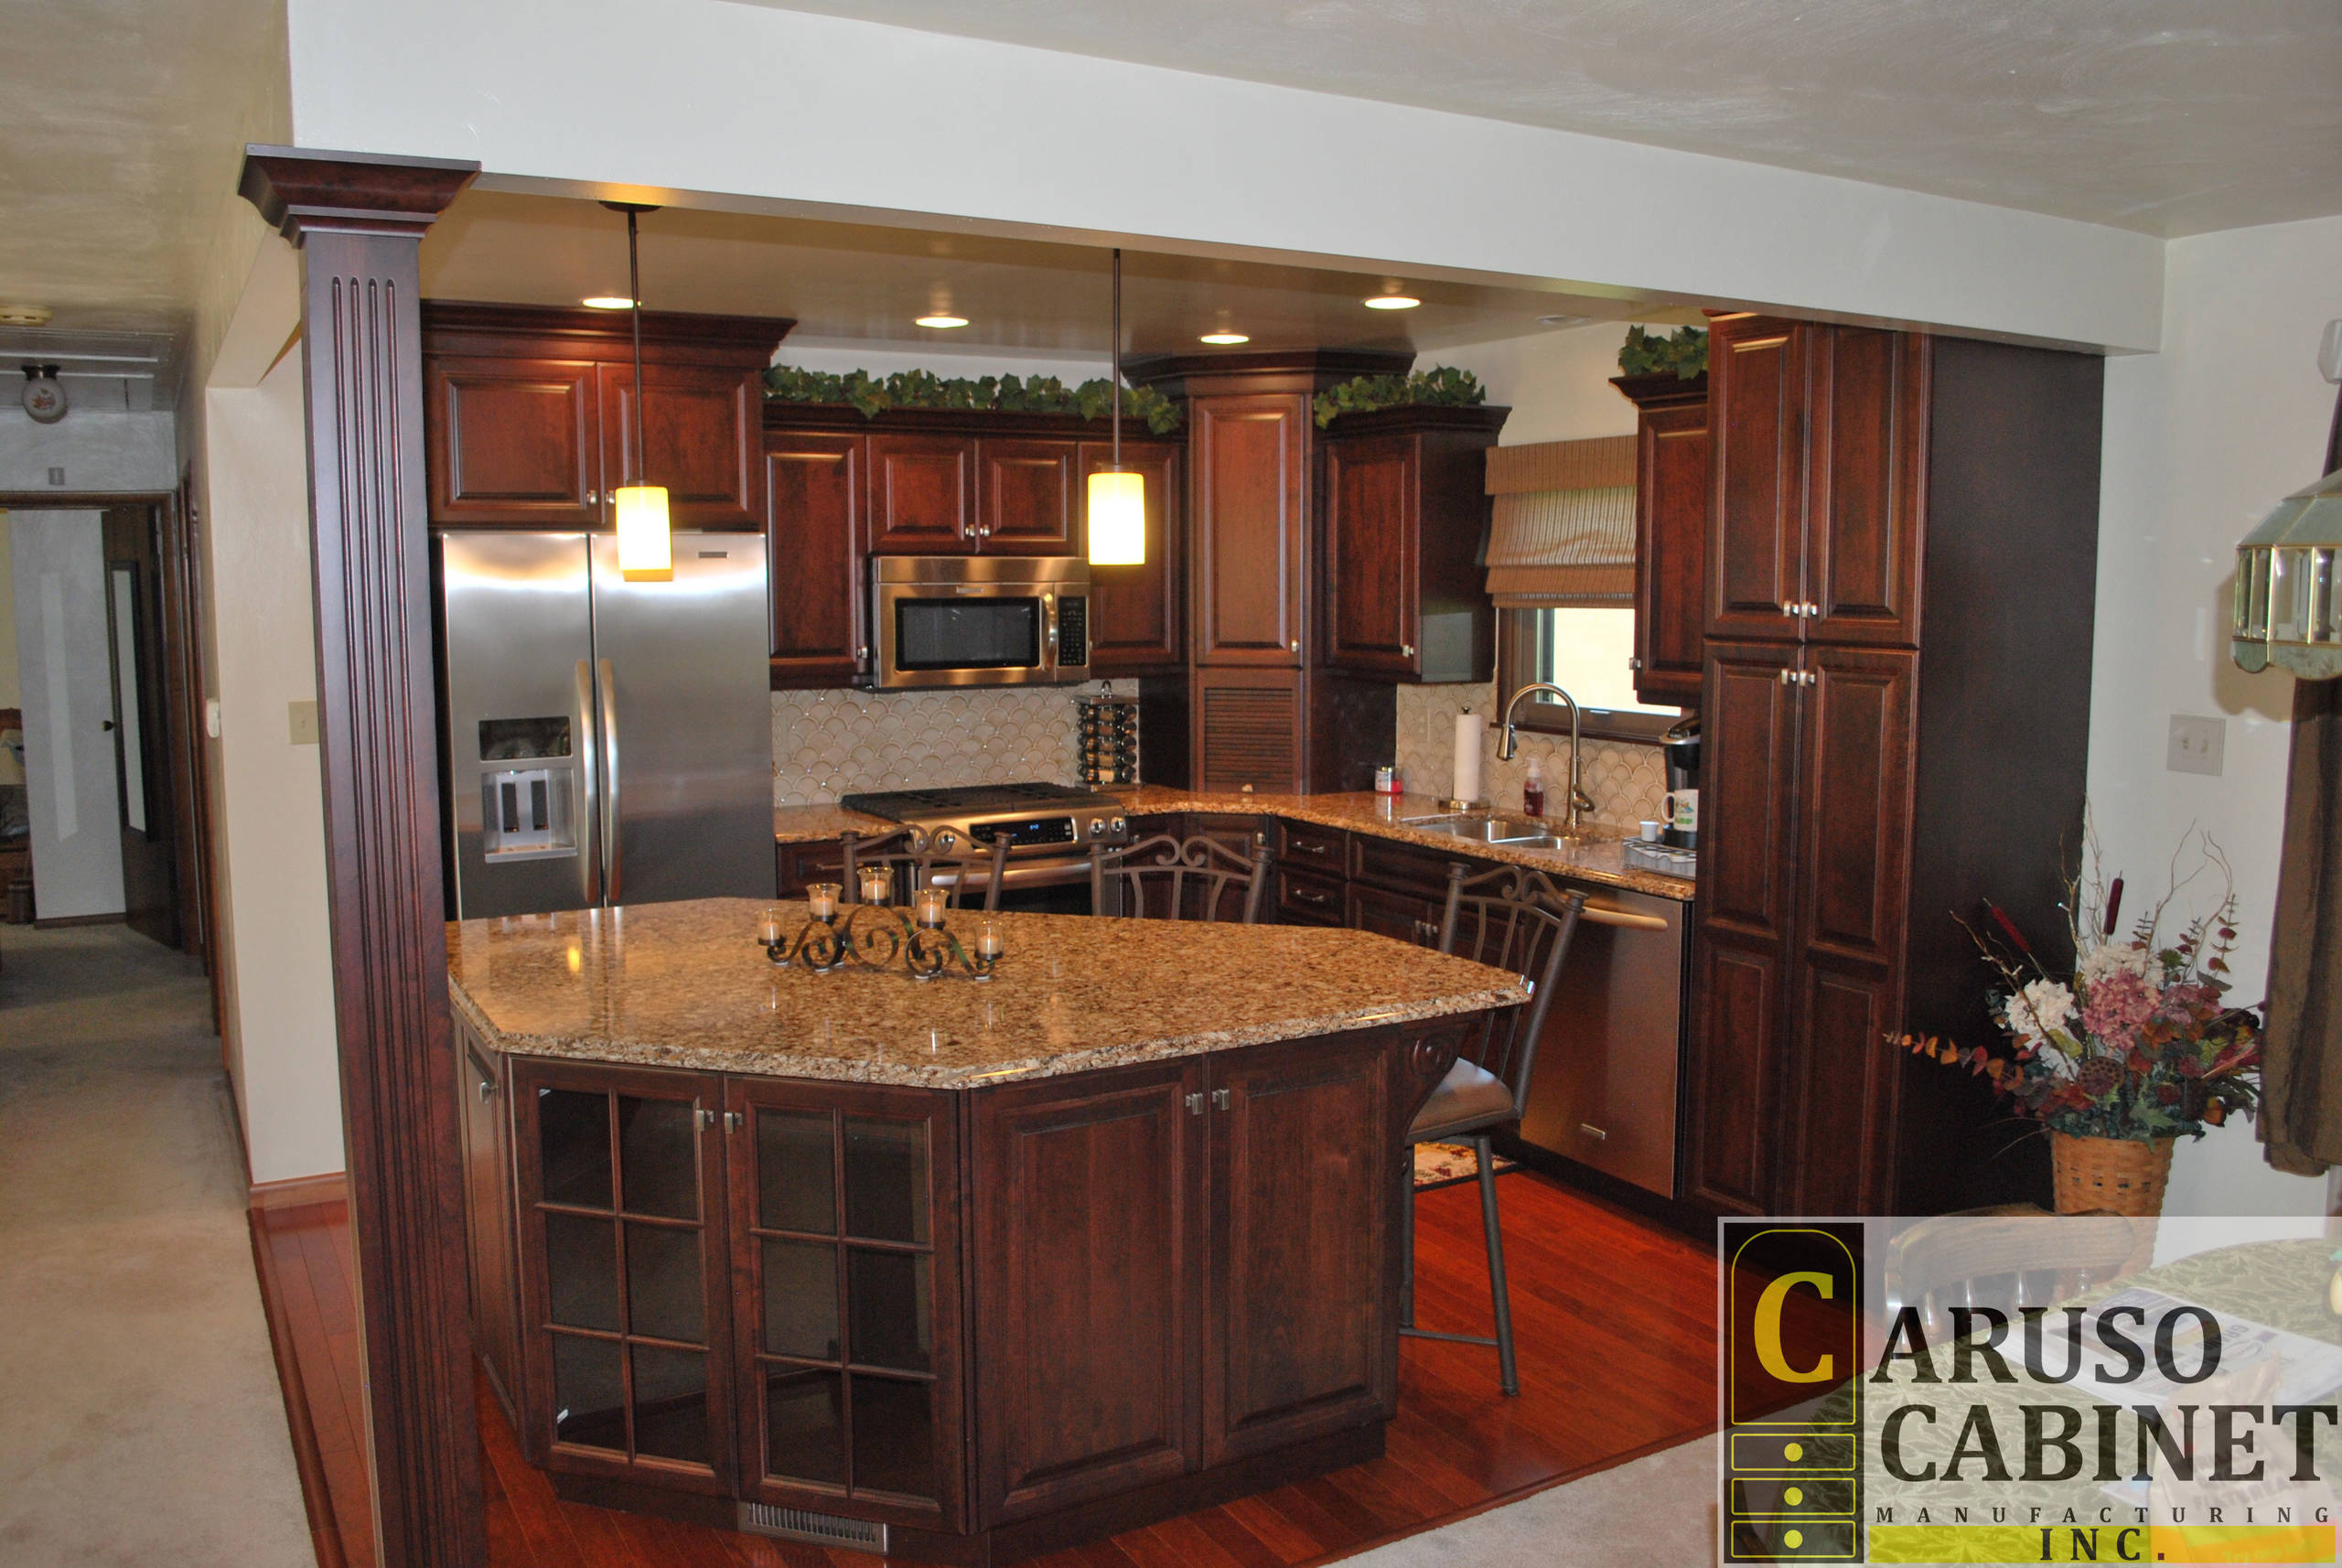 Split Entry Kitchen Remodel Traditional Kitchen Other By Caruso Cabinets Manufacturing Inc Houzz